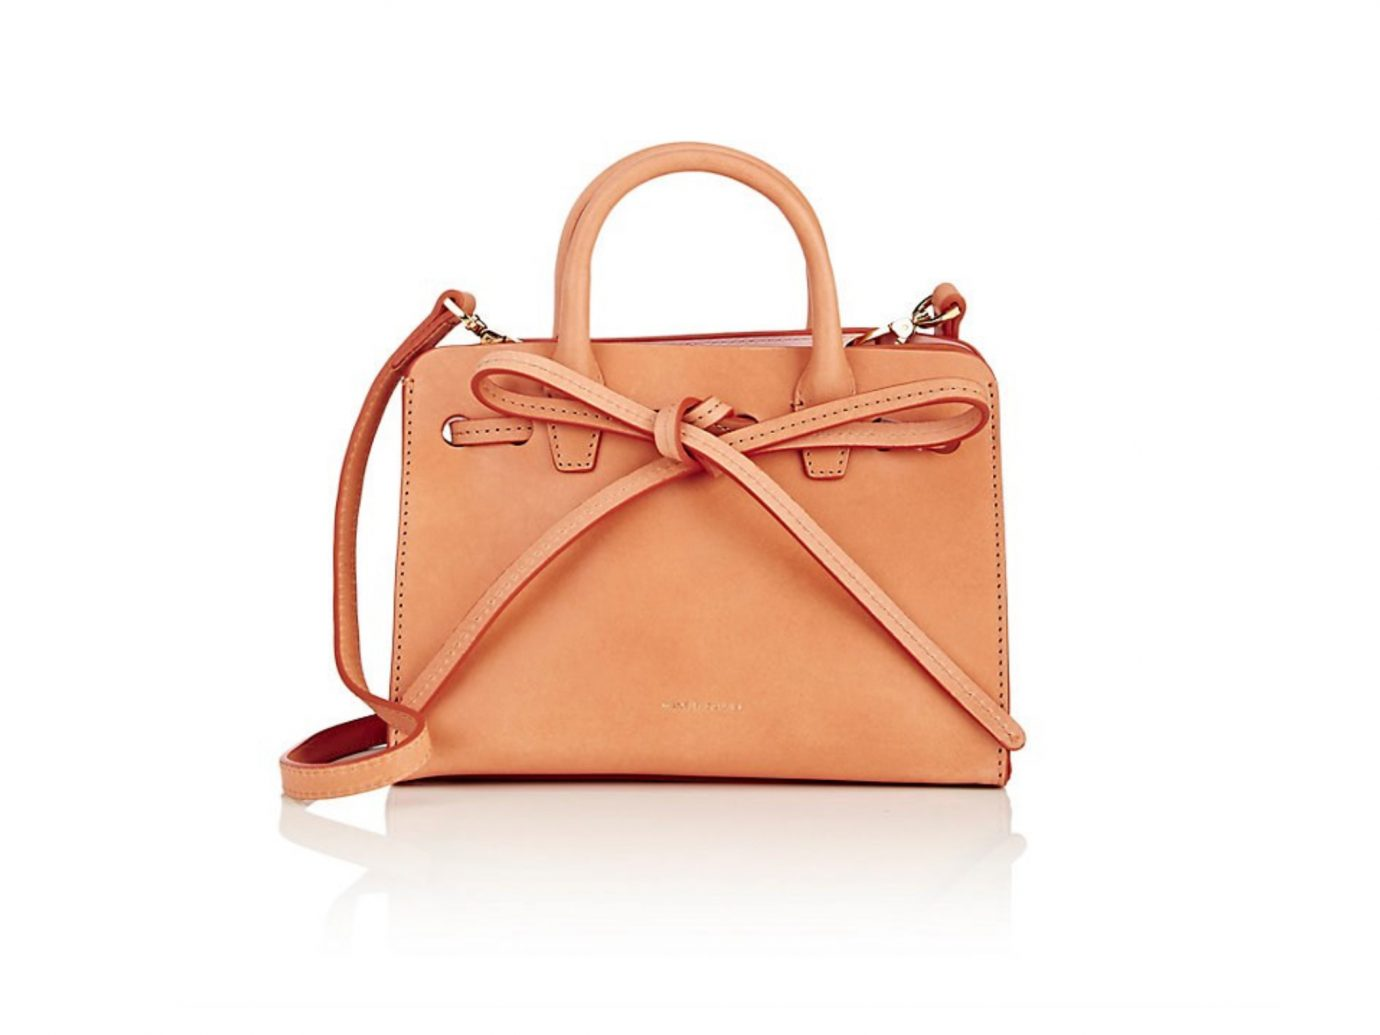 What to buy in july, mansur gavriel mini sun bag